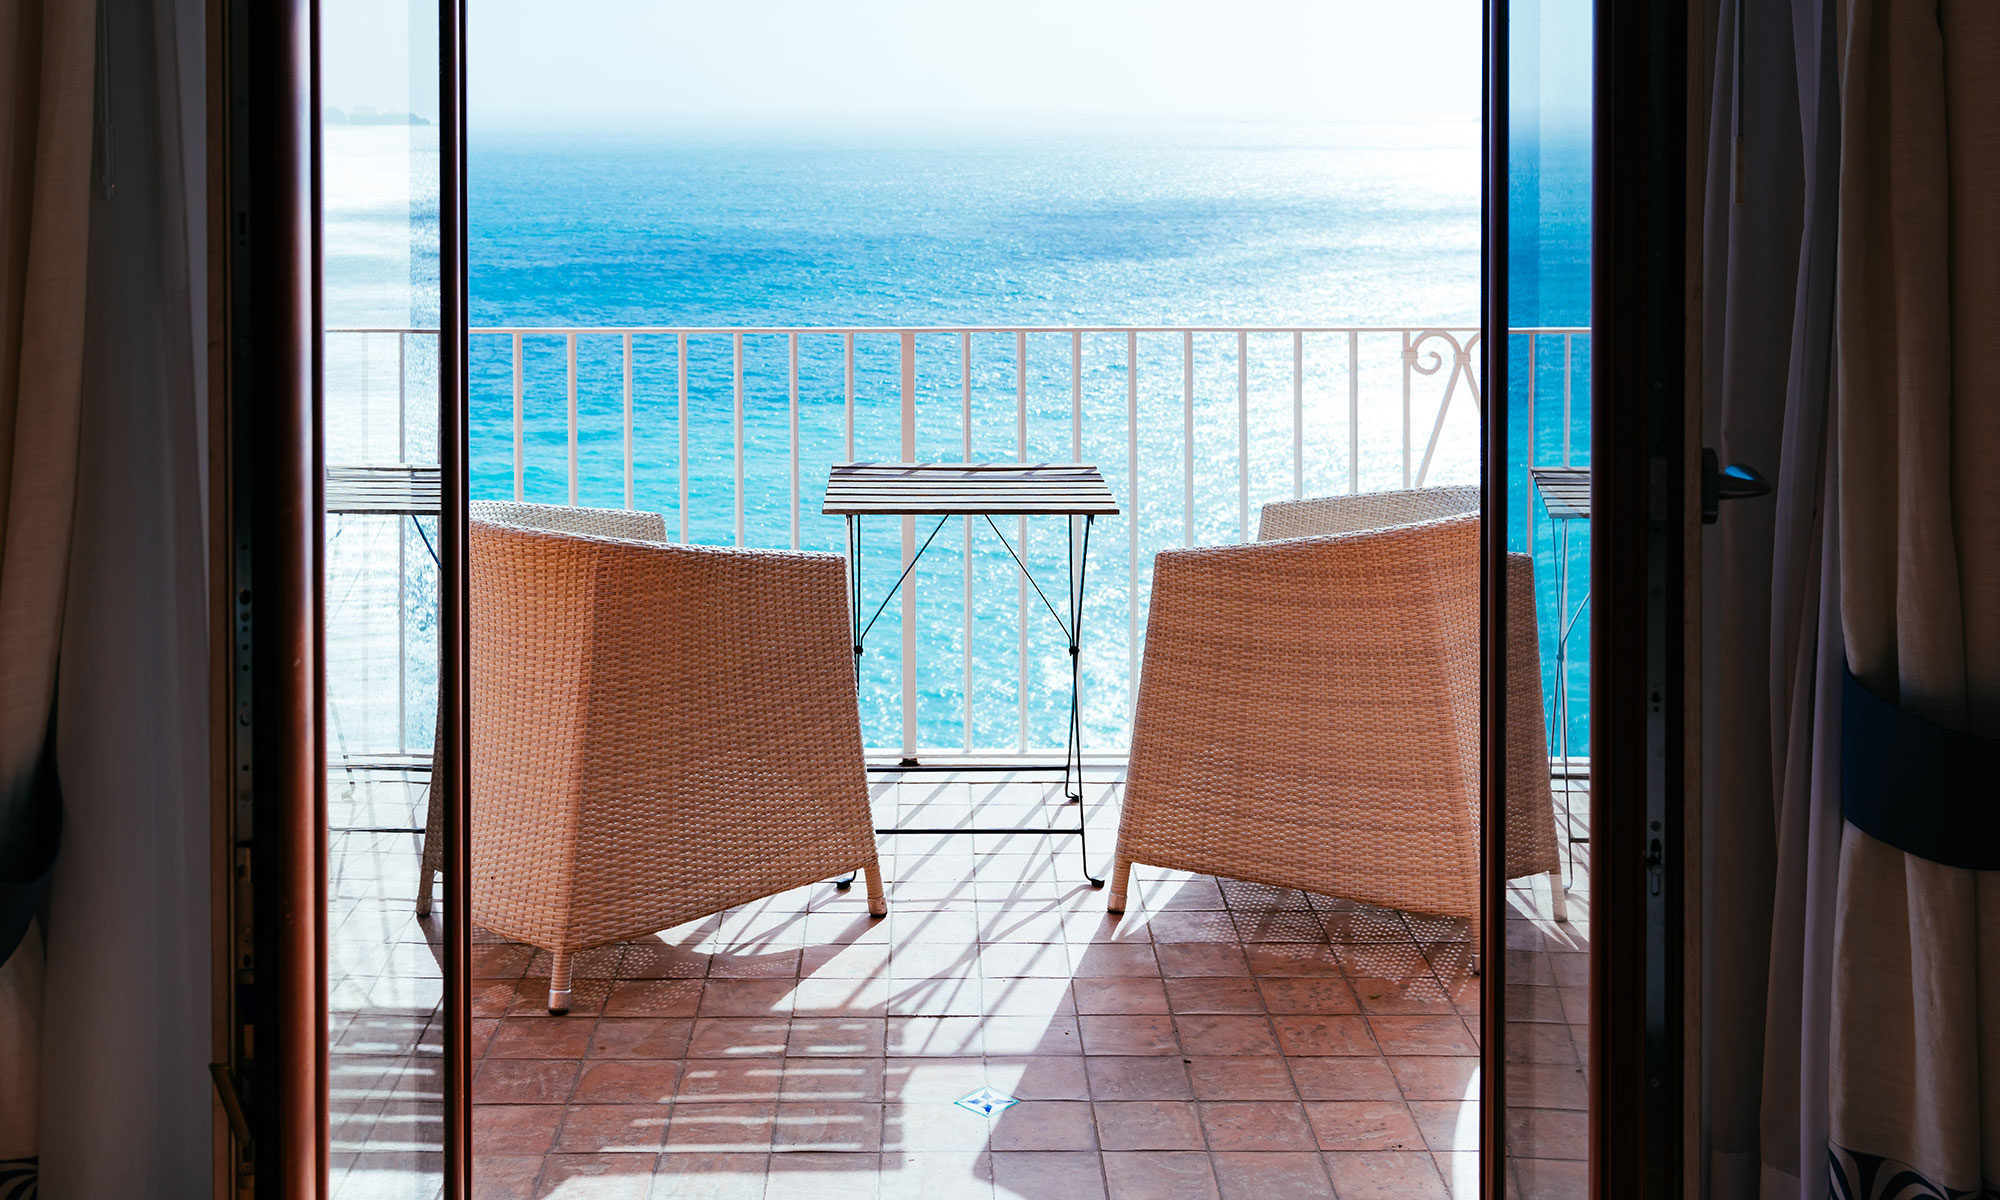 California Deck Inspection | Apartment Balcony Inspection Services